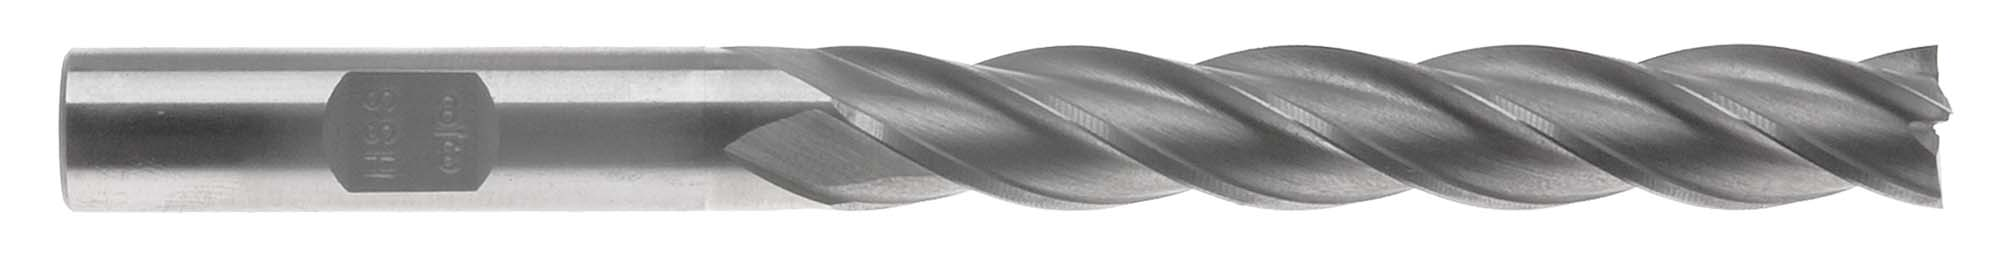 "EM-FX20  5/8"" 4 Flute Extra Long End Mill- 5/8"" Shank, High Speed Steel"